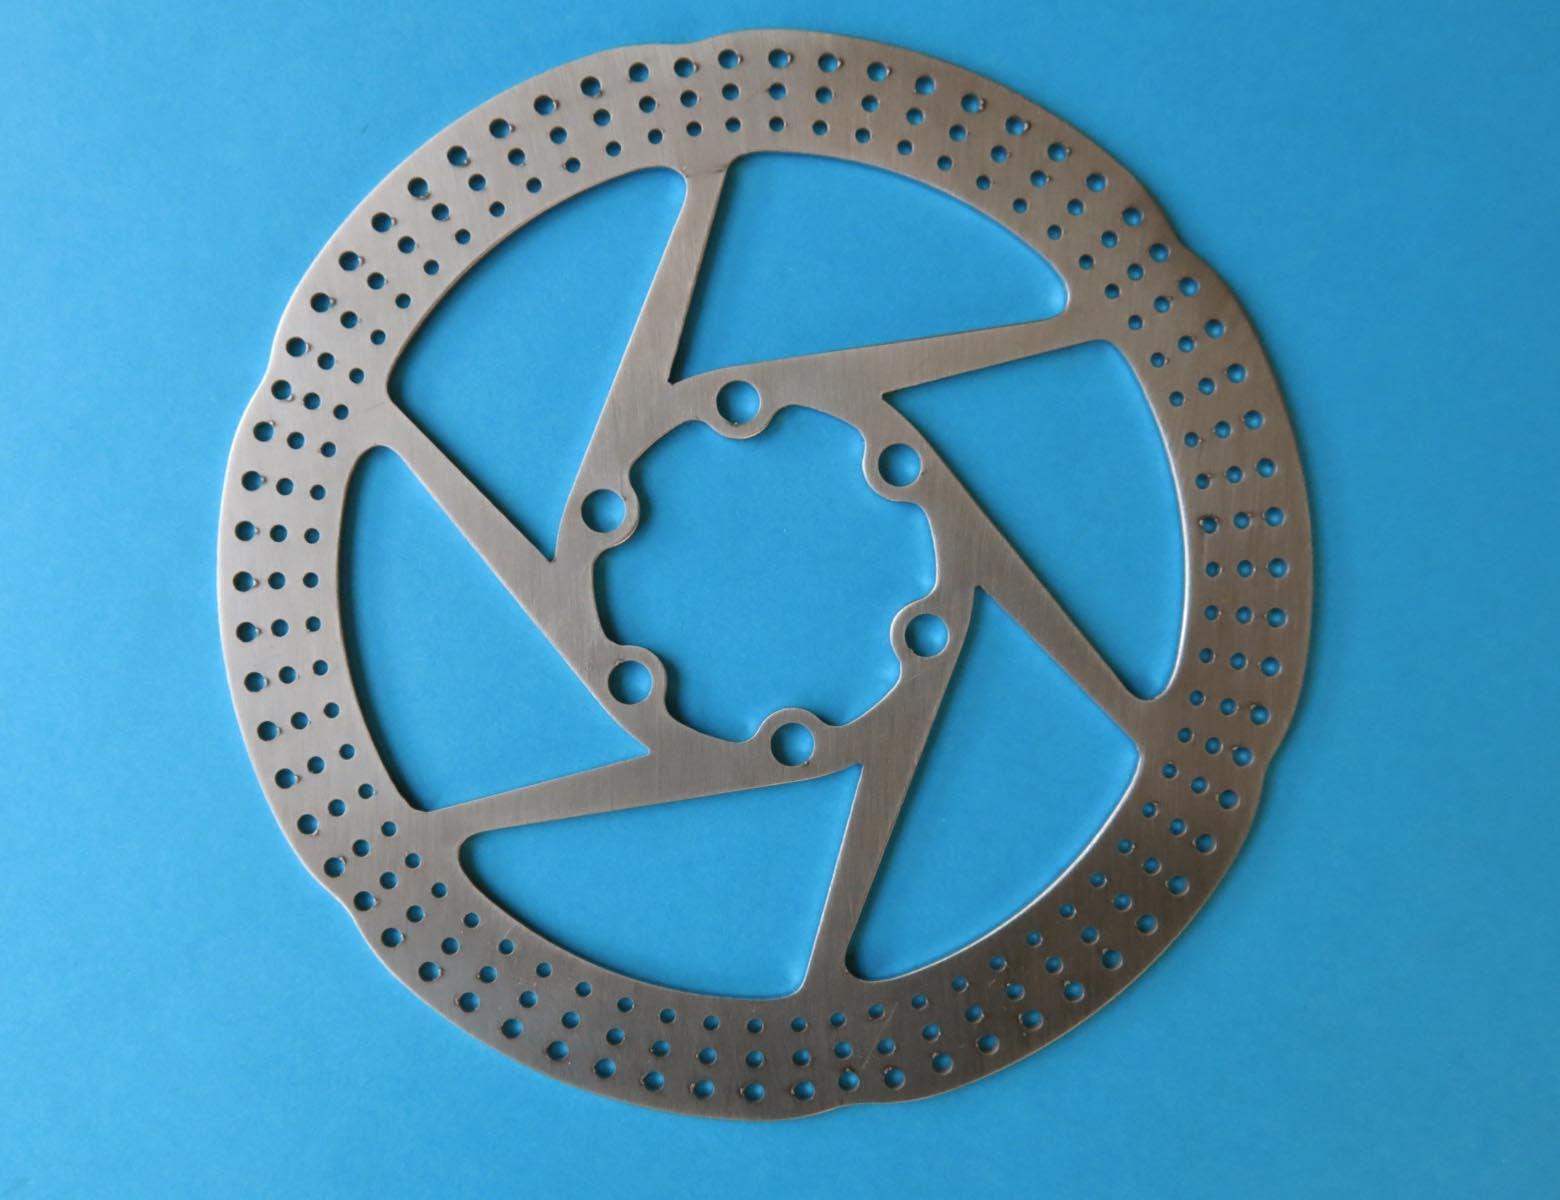 Stainless Steel Material For Laser Cutting